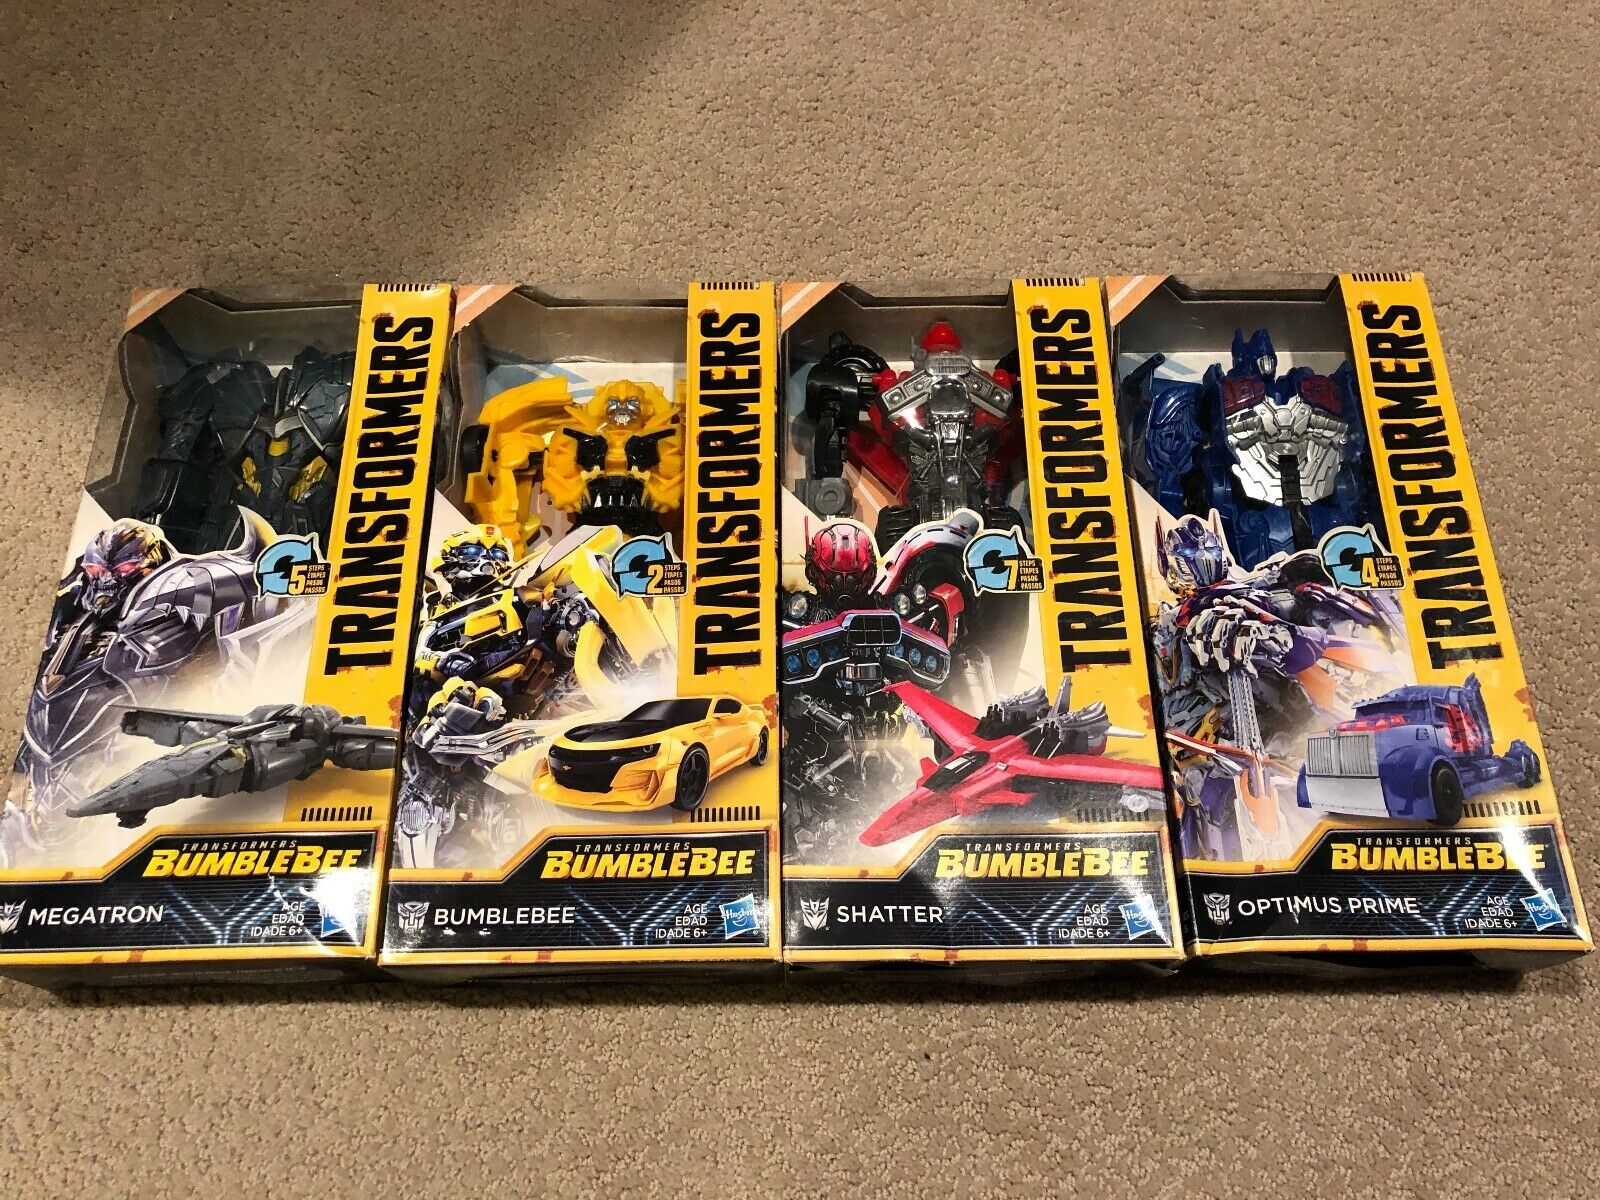 Transformers Bumblebee Movie Lot of 4. MISB Rare Variant Packaging